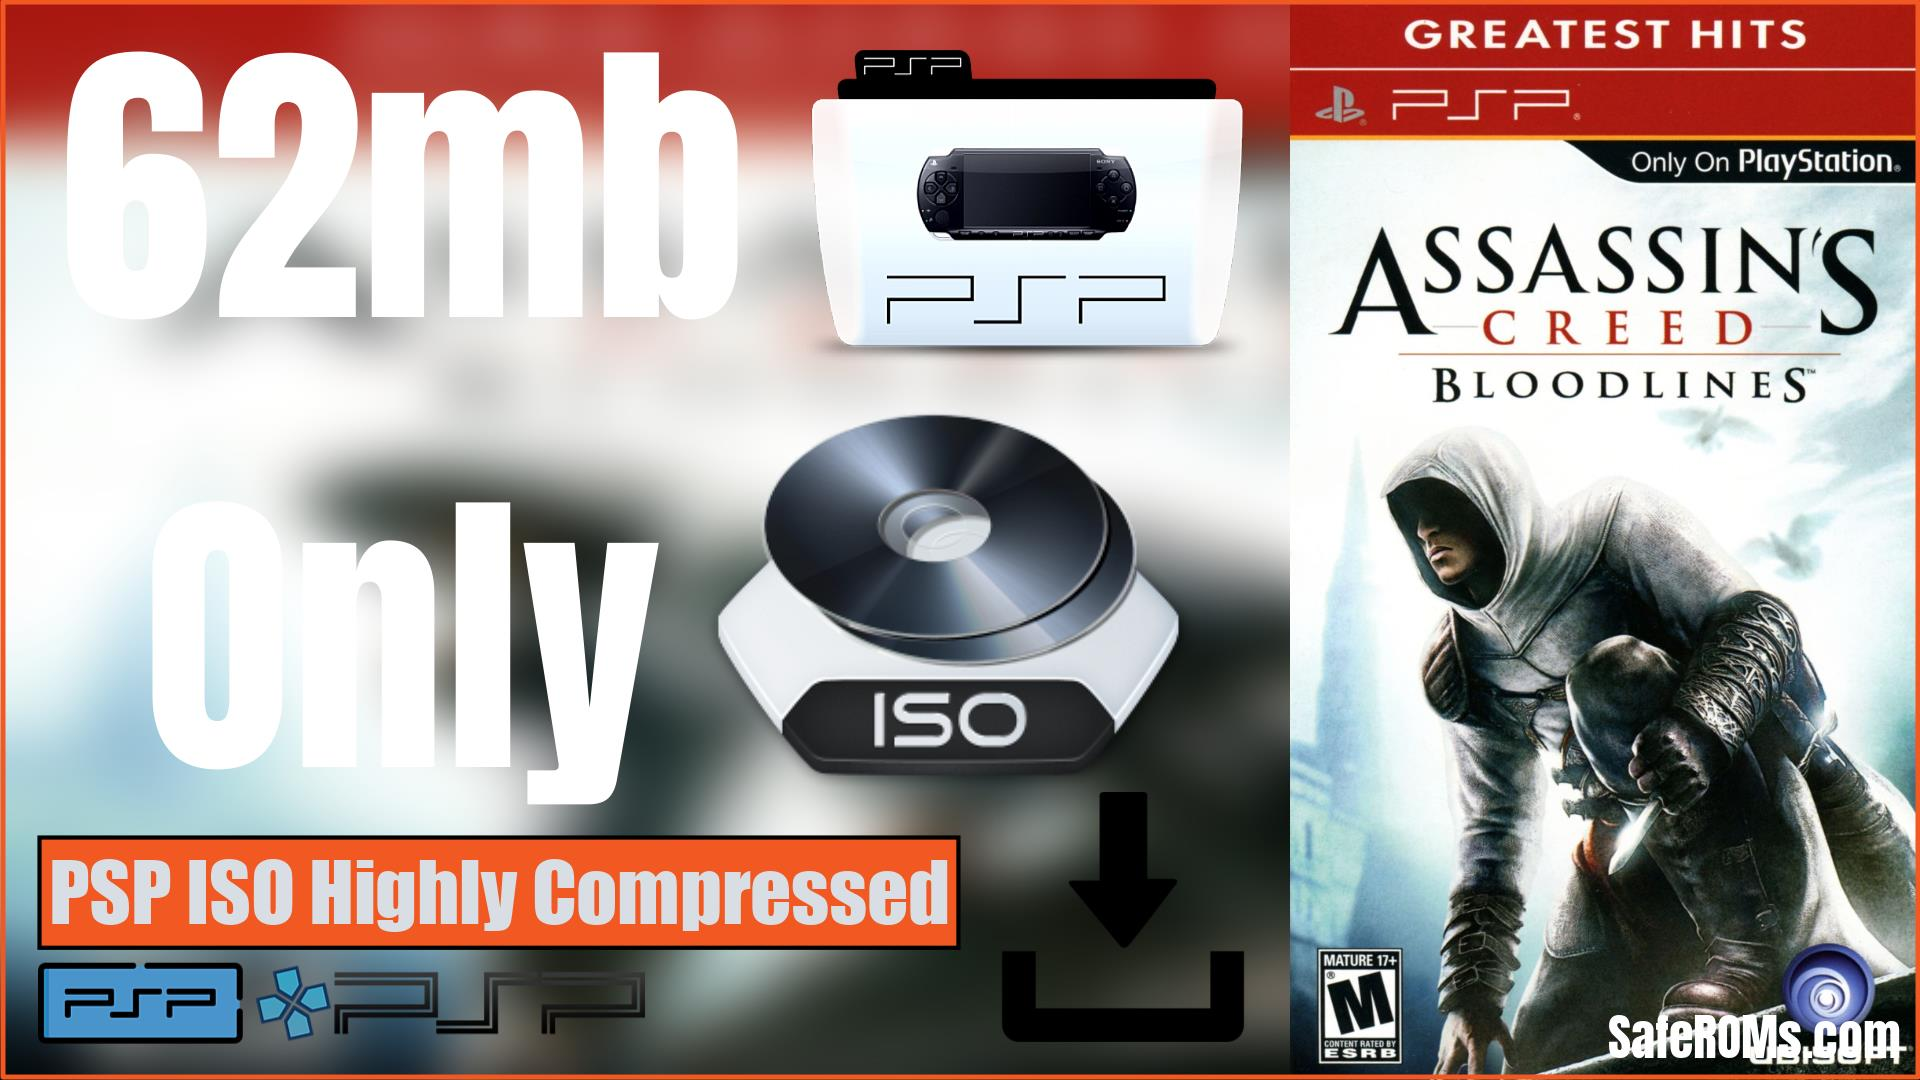 Assassin's Creed PSP ISO Highly Compressed